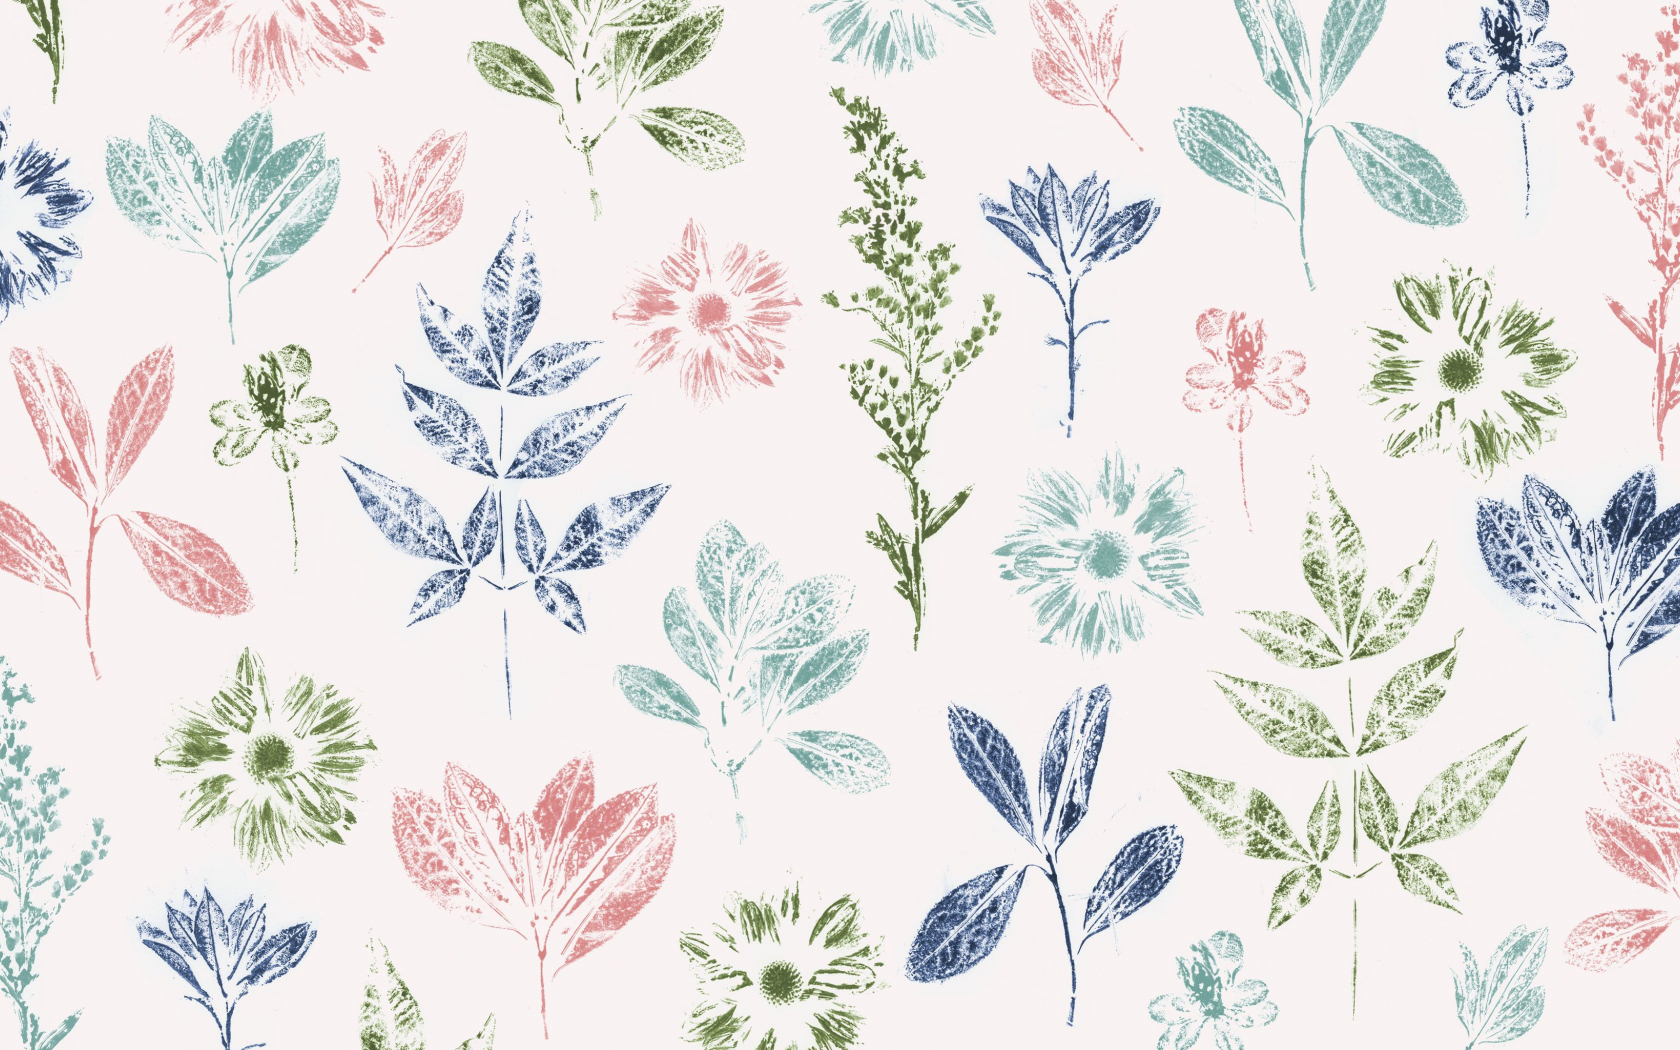 Free Download Floral Computer Wallpapers Top Backgrounds Prime